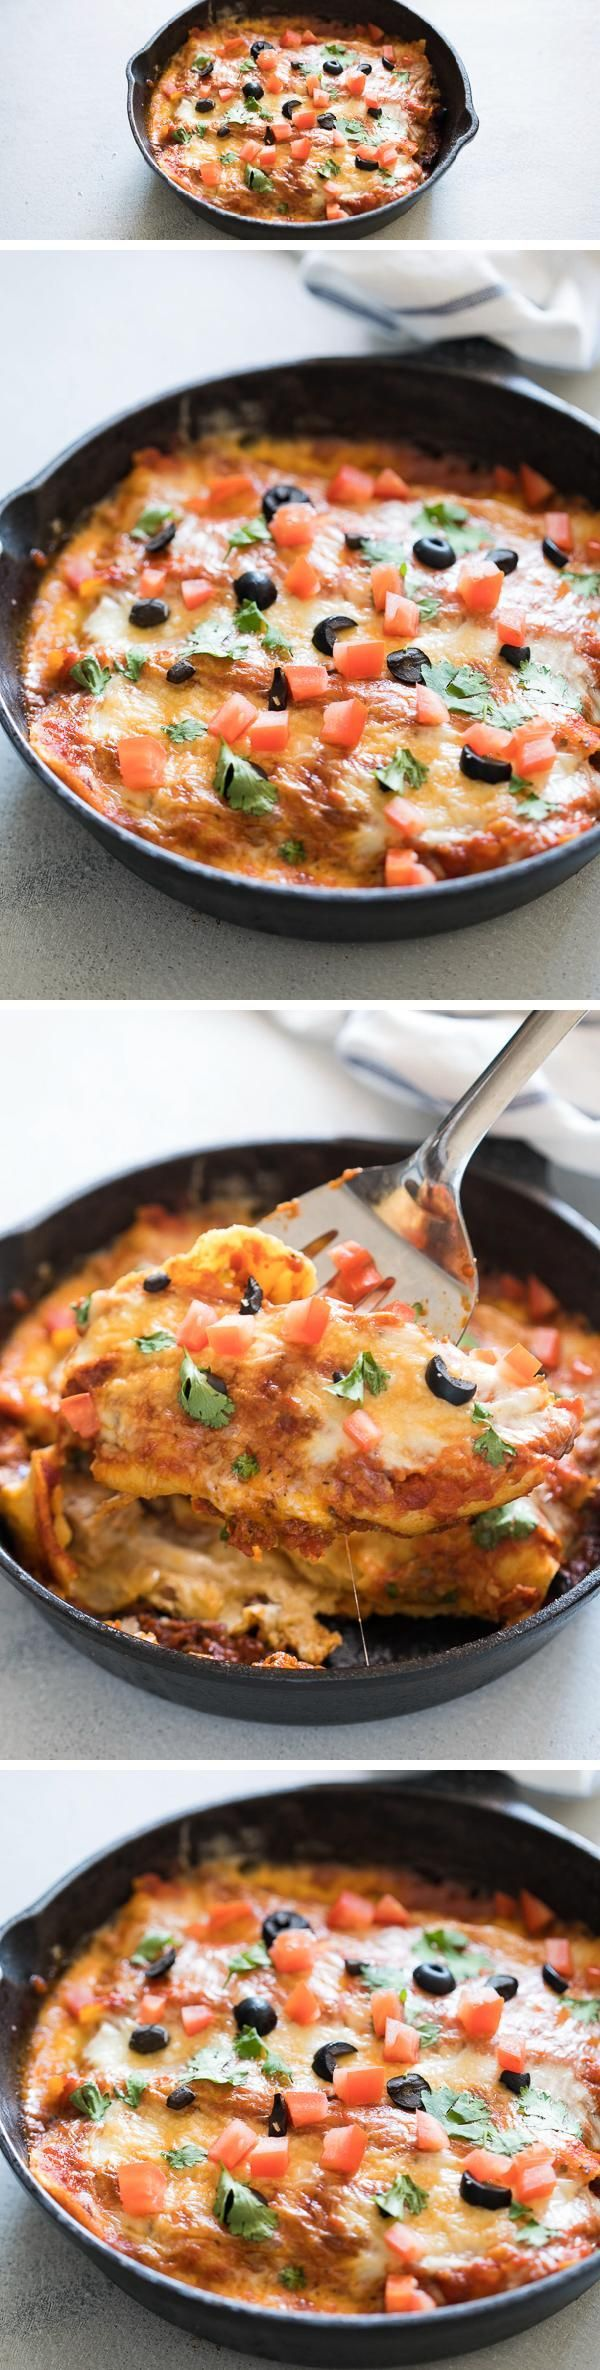 ONE POT STOVETOP ENCHILADAS is an easy, no fuss dinner recipe. These enchiladas are ready in 30 minutes, insanely delicious and super cheesy.